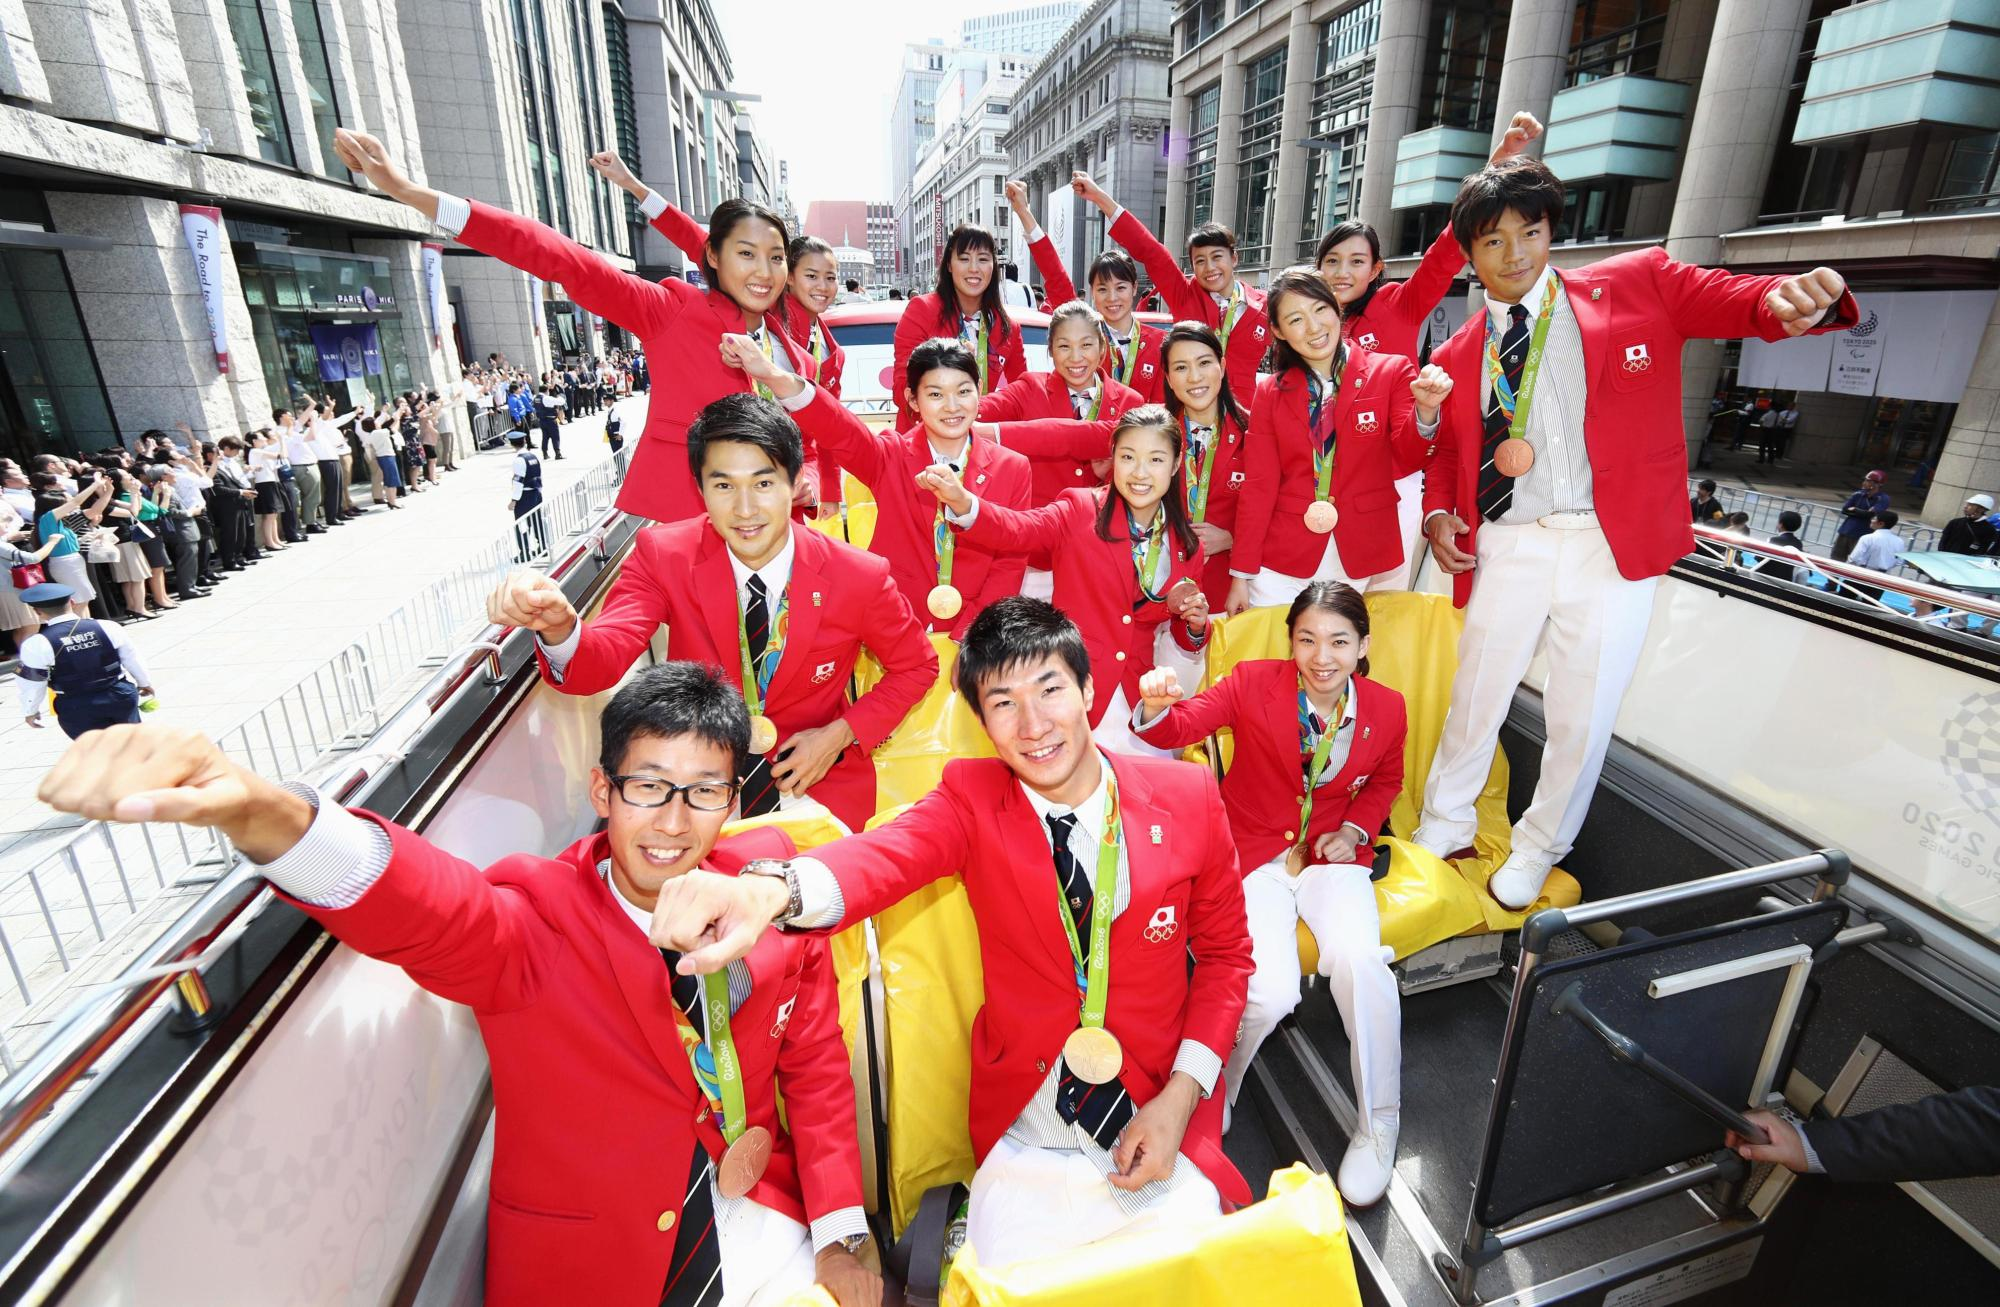 Rio Olympians pose during a parade to honor medal winners from the 2016 Rio Olympics and Paralympics on Oct. 7, 2016, in Tokyo's Ginza district. Japanese athletes earned 12 gold medals and 41 overall during the Rio Games, as well as 24 medals overall in the Paralympics. | KYODO